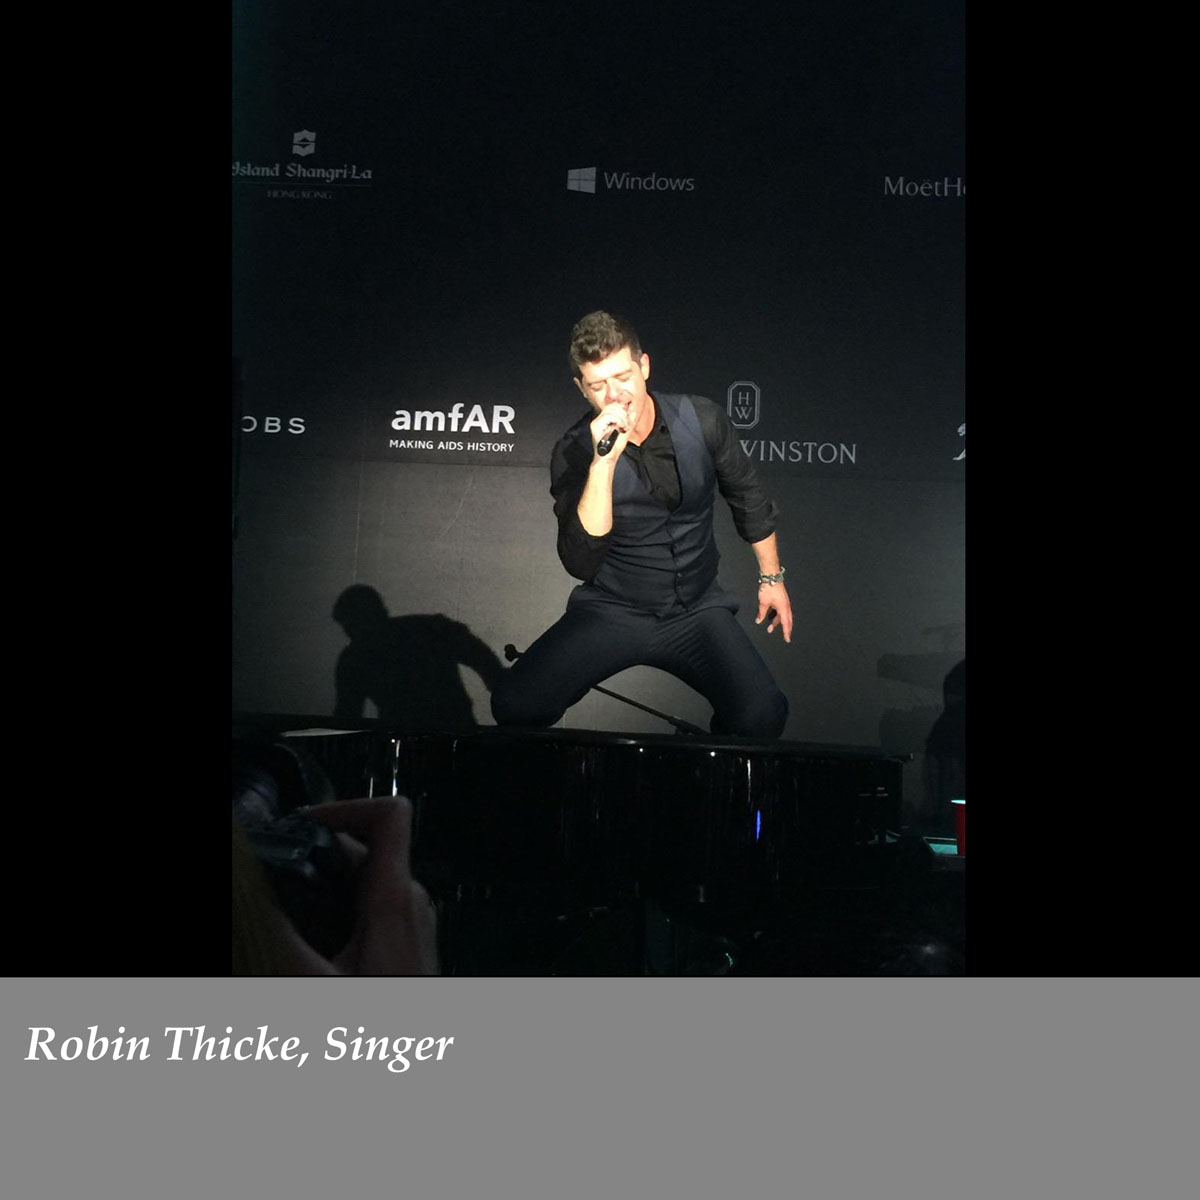 Robin-Thicke-Singer-2